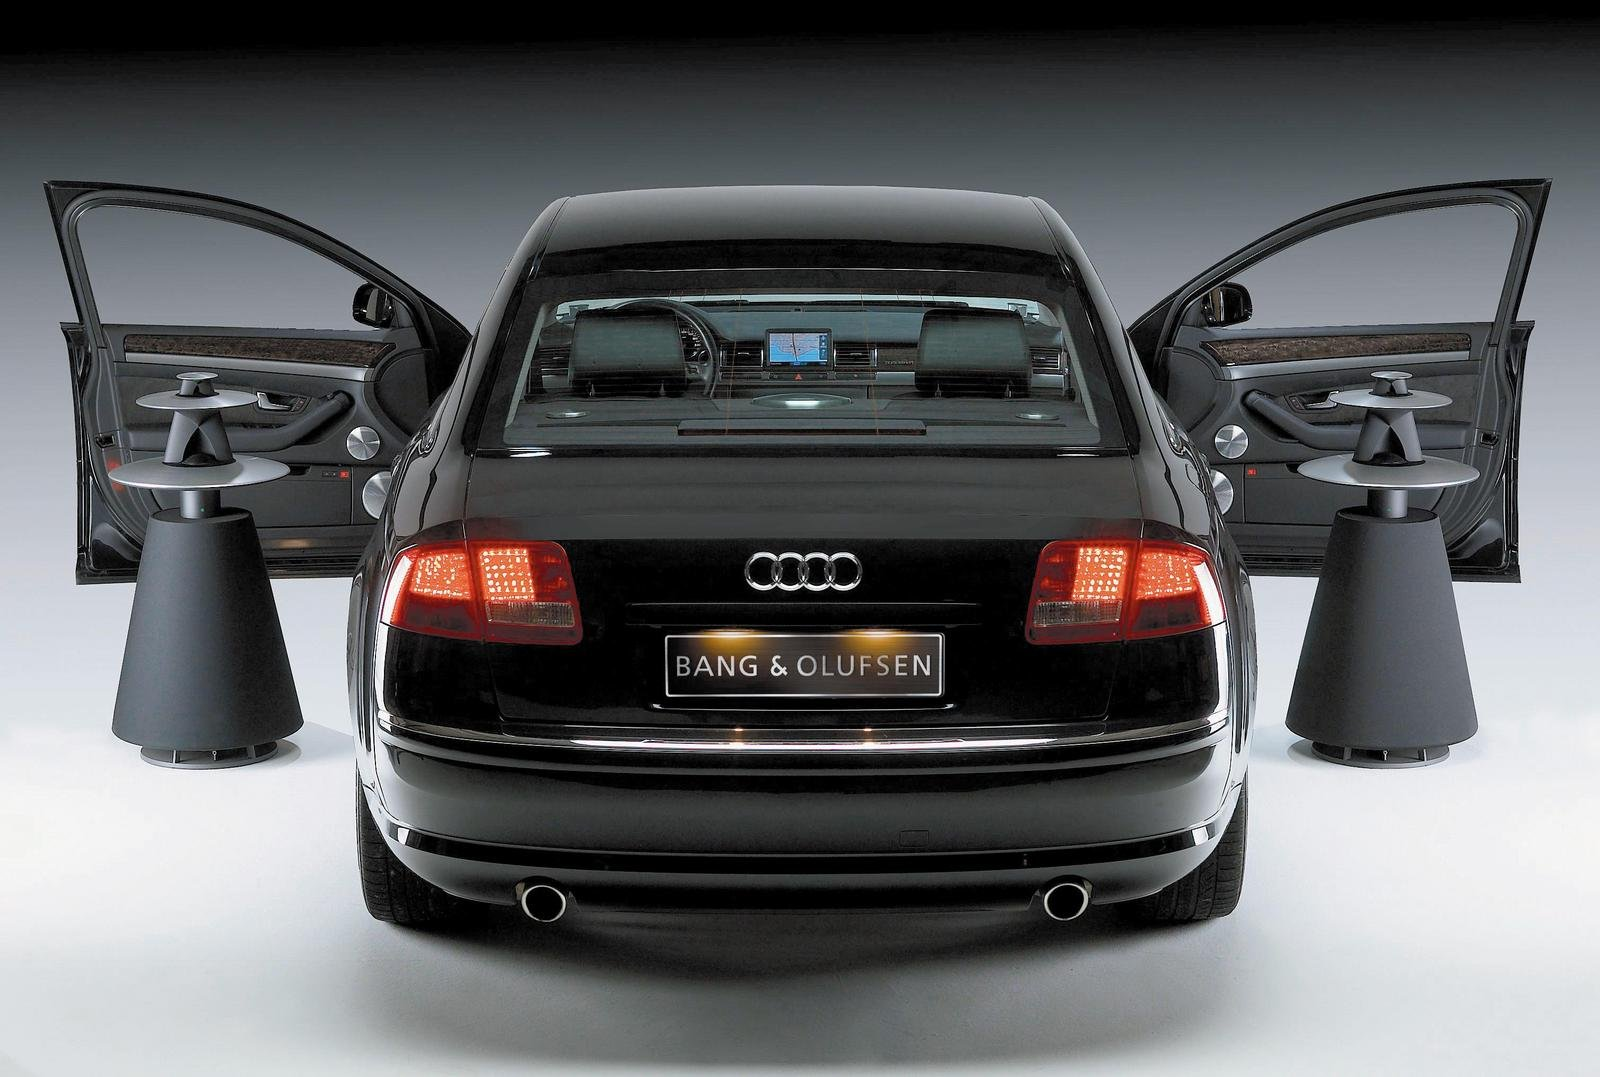 bang olufsen sound system in the audi a8 news top speed. Black Bedroom Furniture Sets. Home Design Ideas